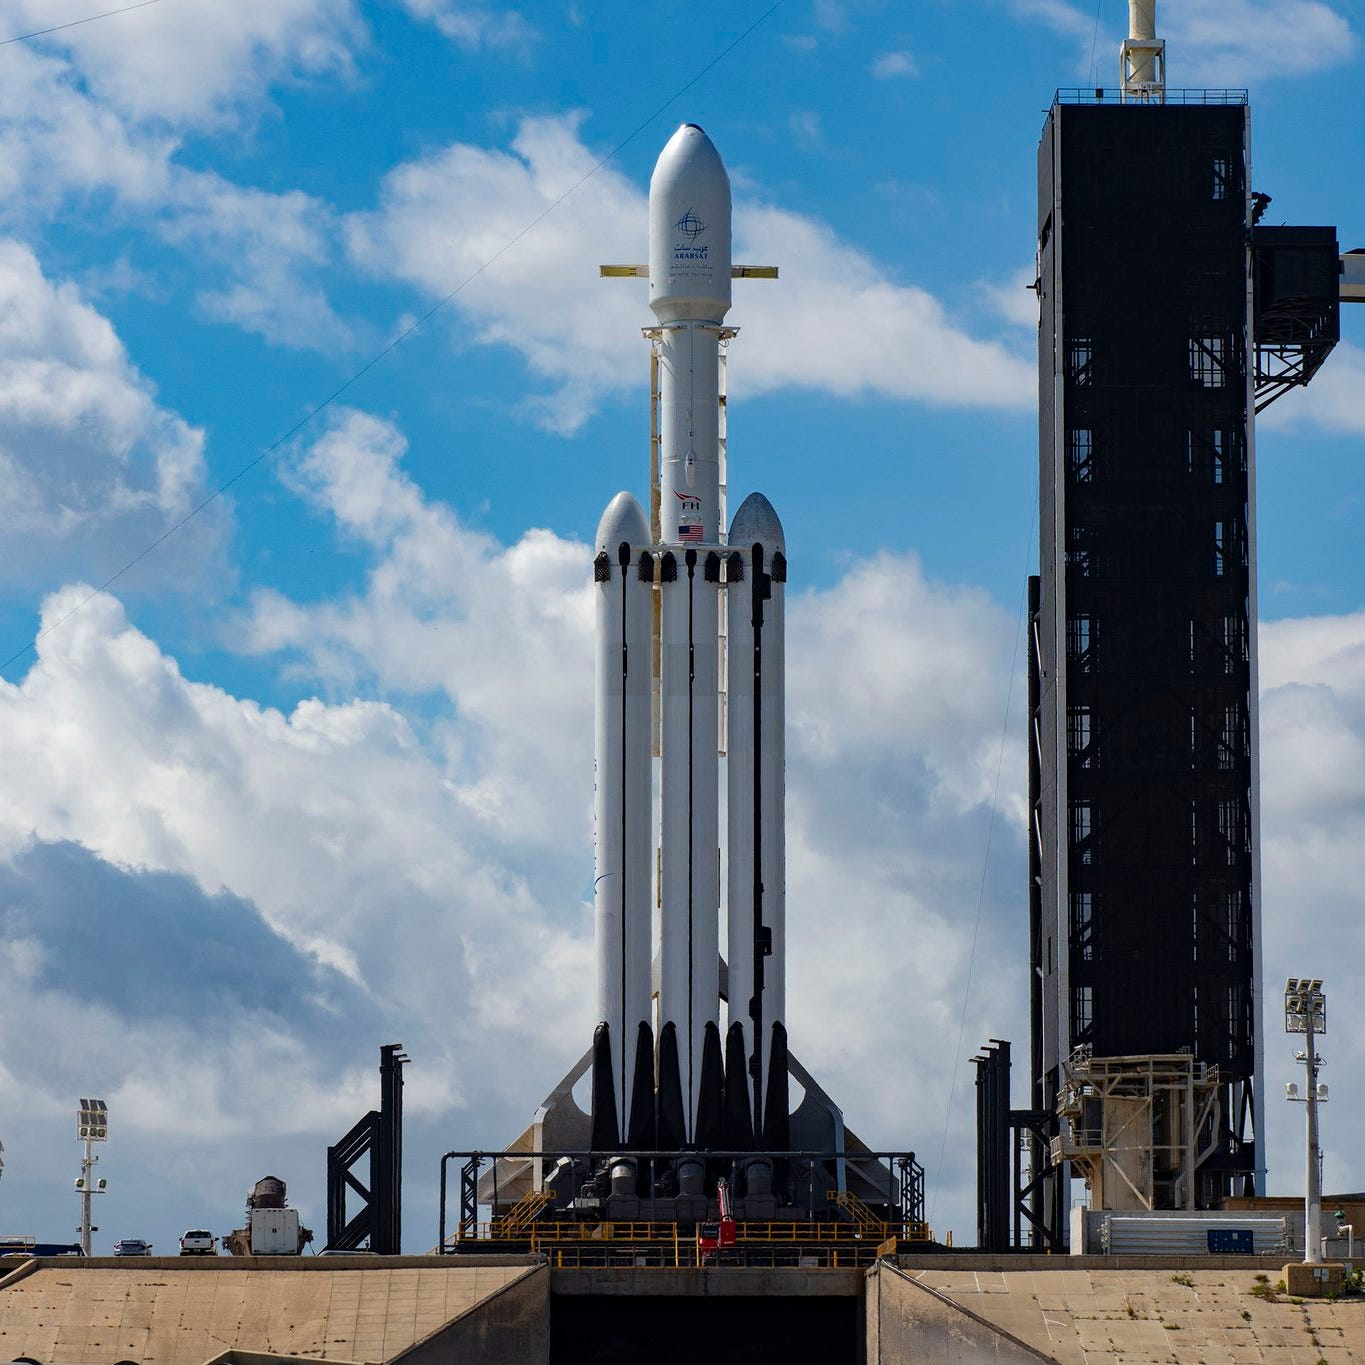 Updates: SpaceX launches Falcon Heavy rocket from Kennedy Space Center